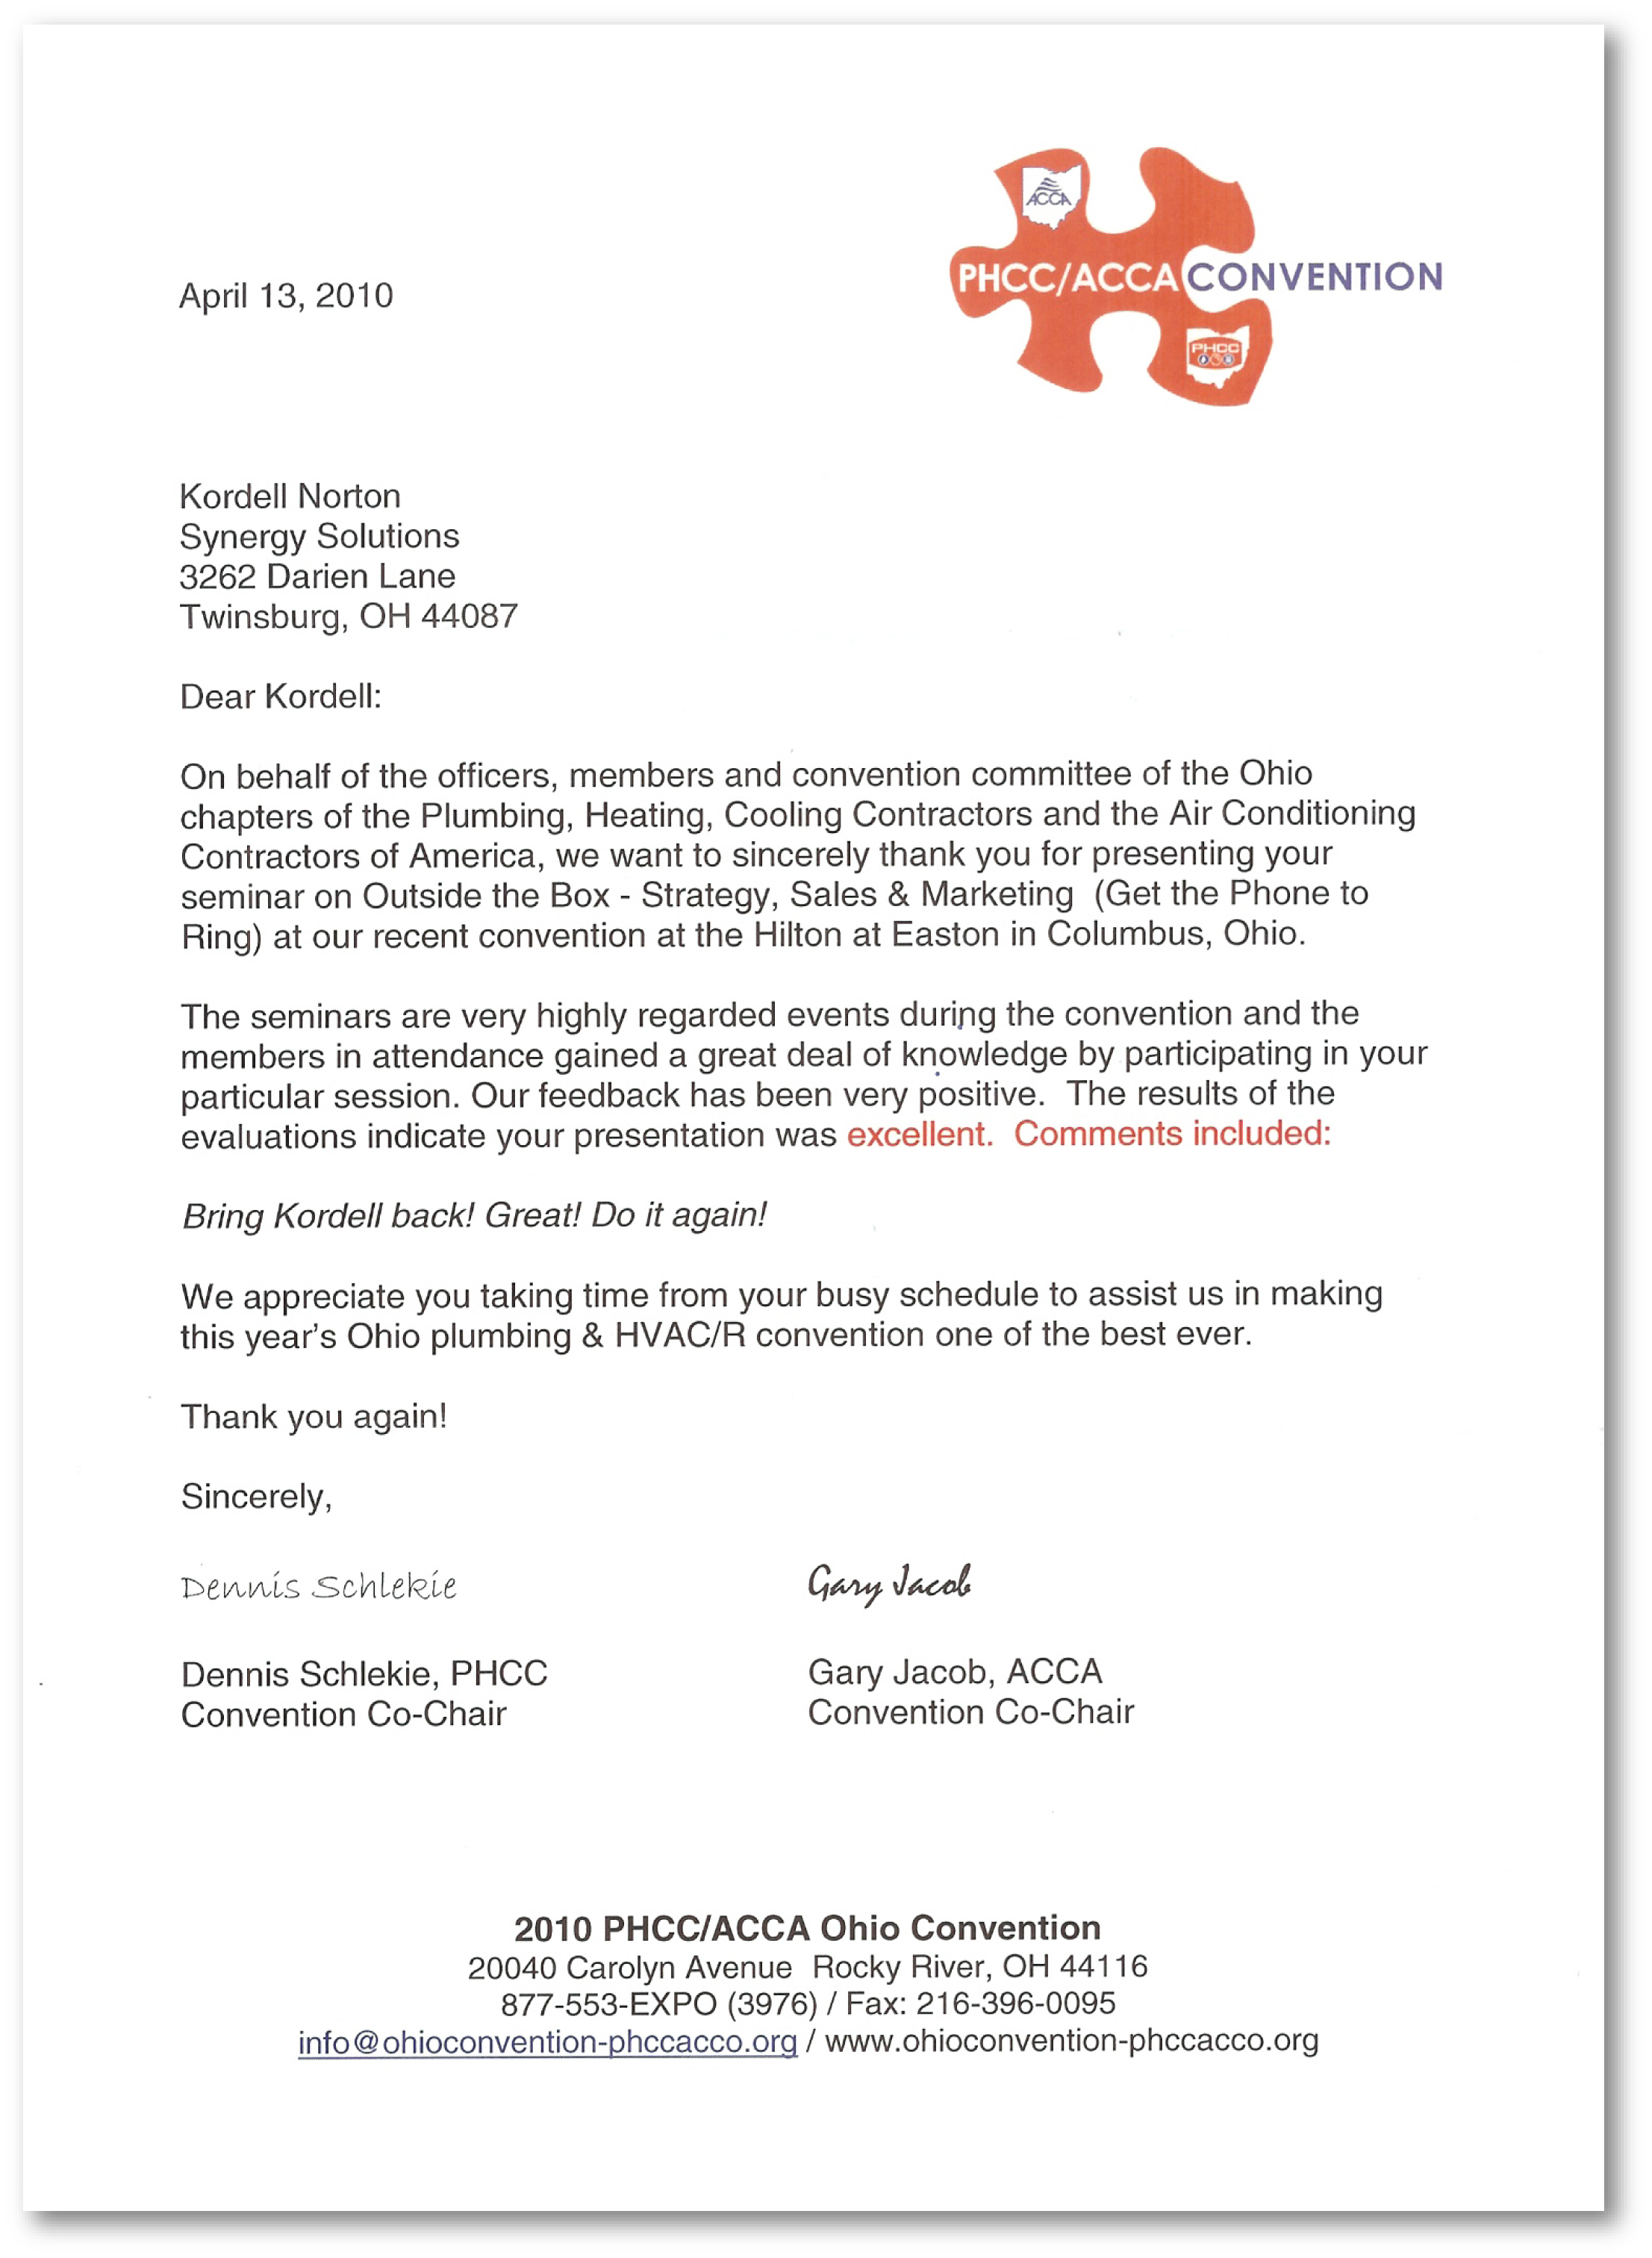 rd news reference letter kordell norton reference letter from the phcc acca convention